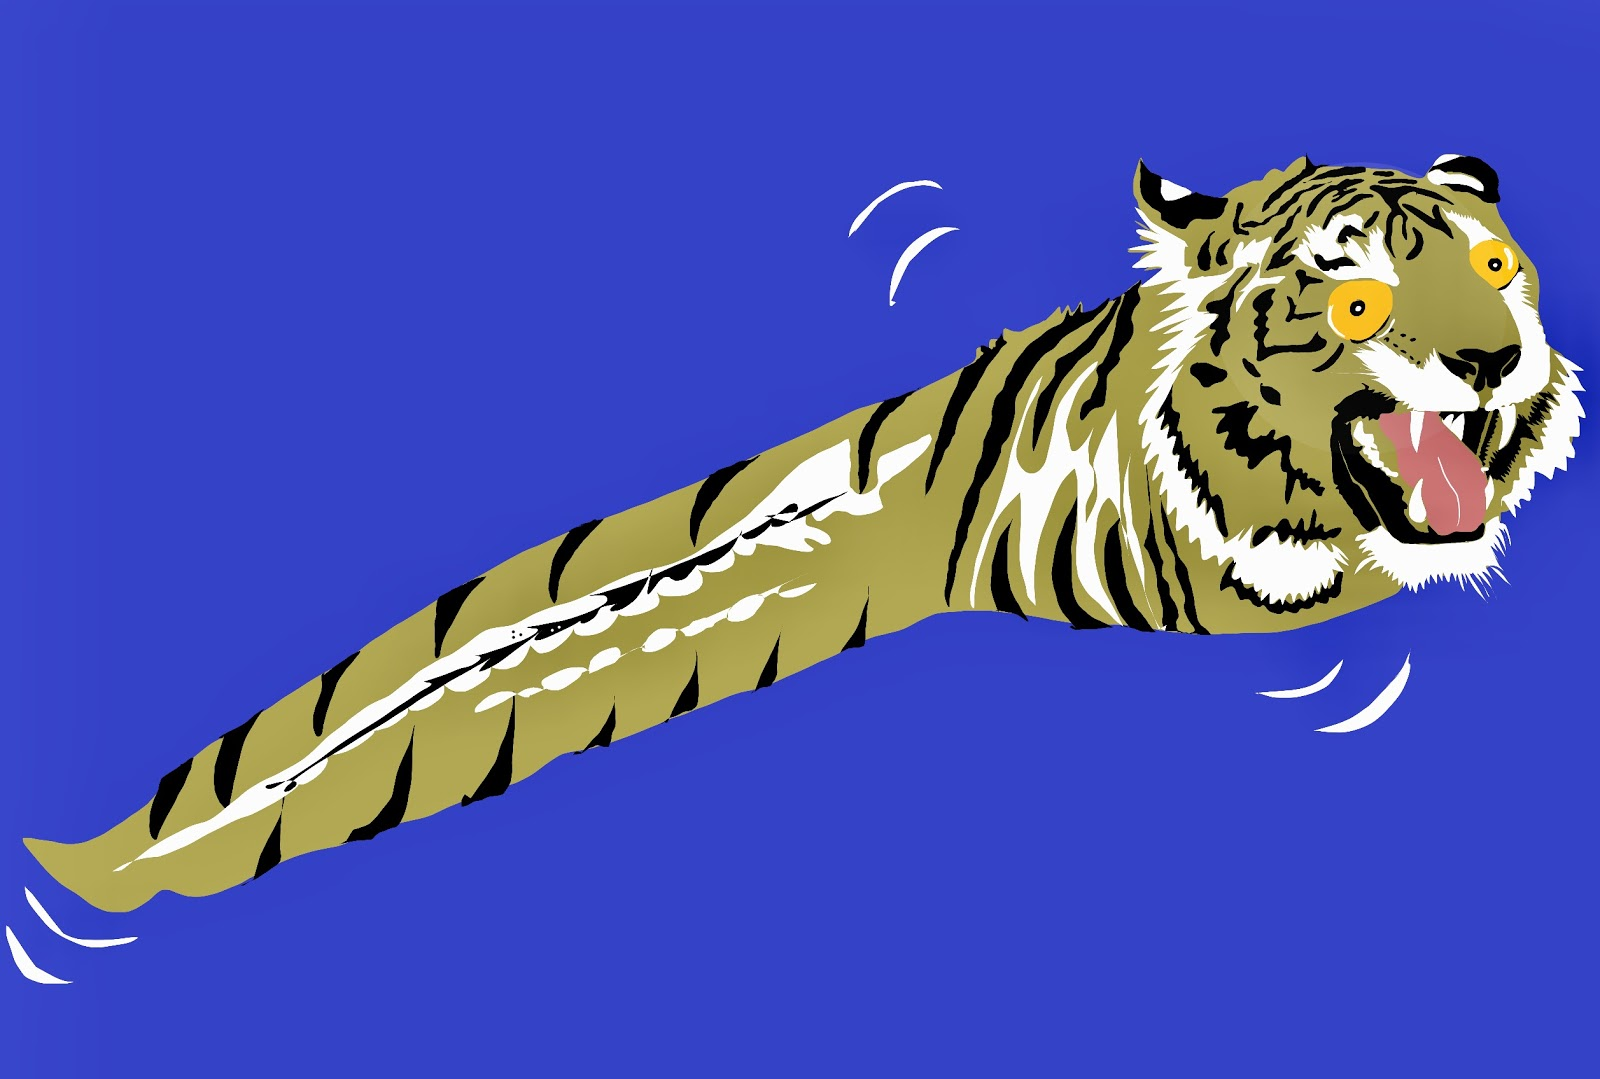 Picture of a tadpole and tiger mashup.